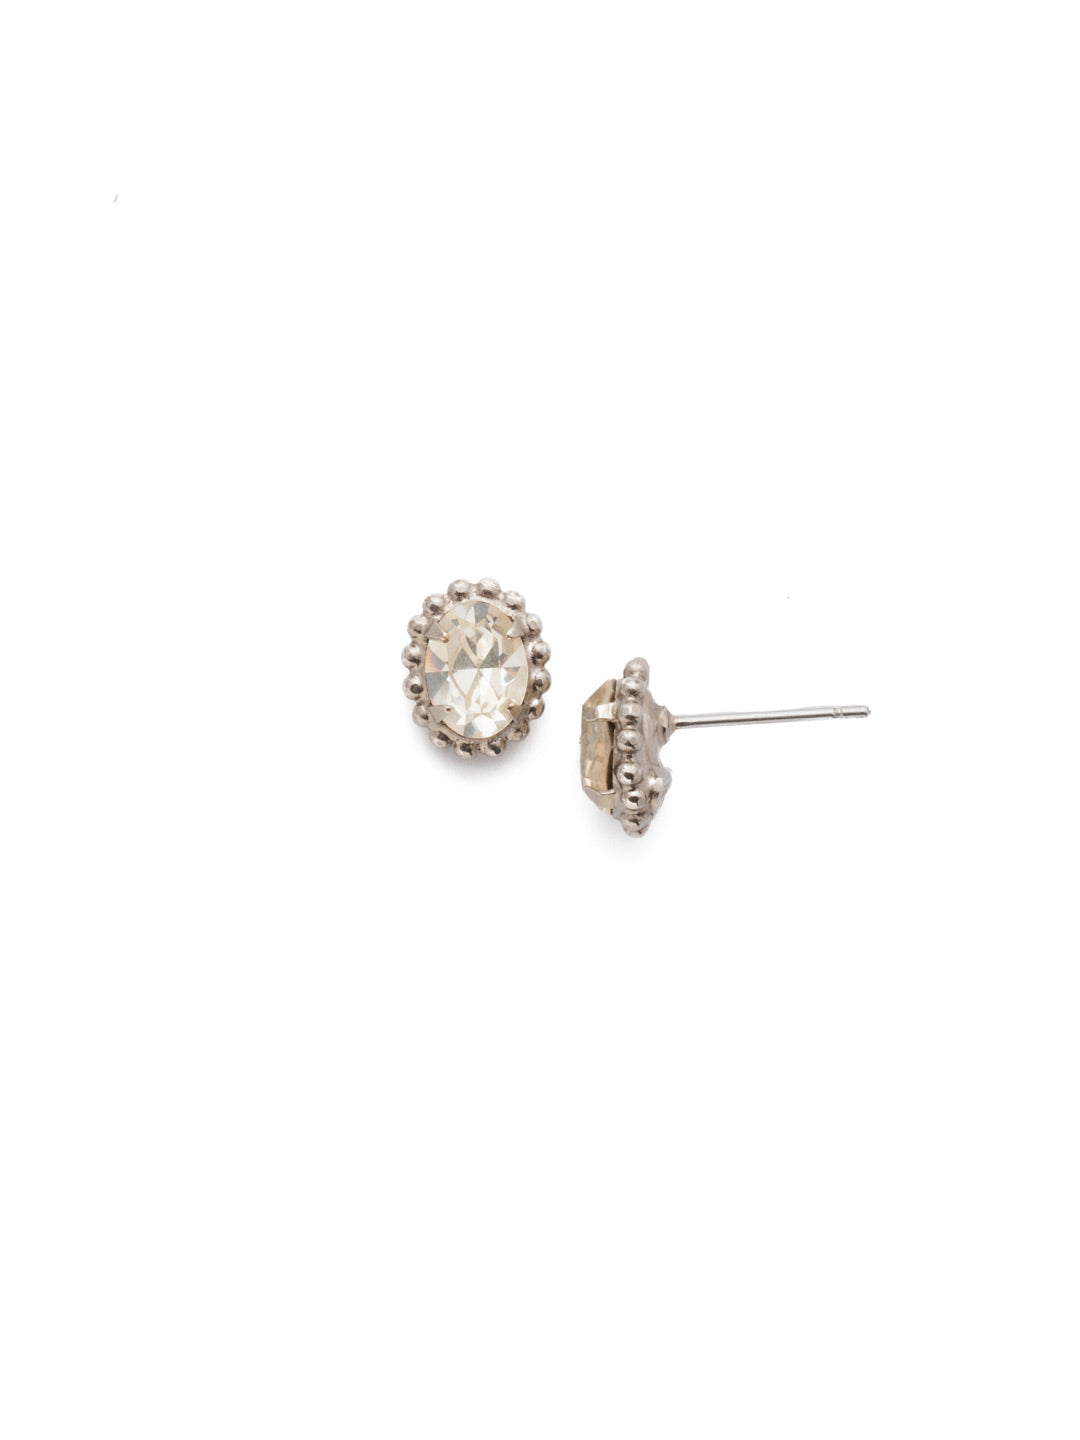 Maisie Stud Earrings - EEH11ASCCH